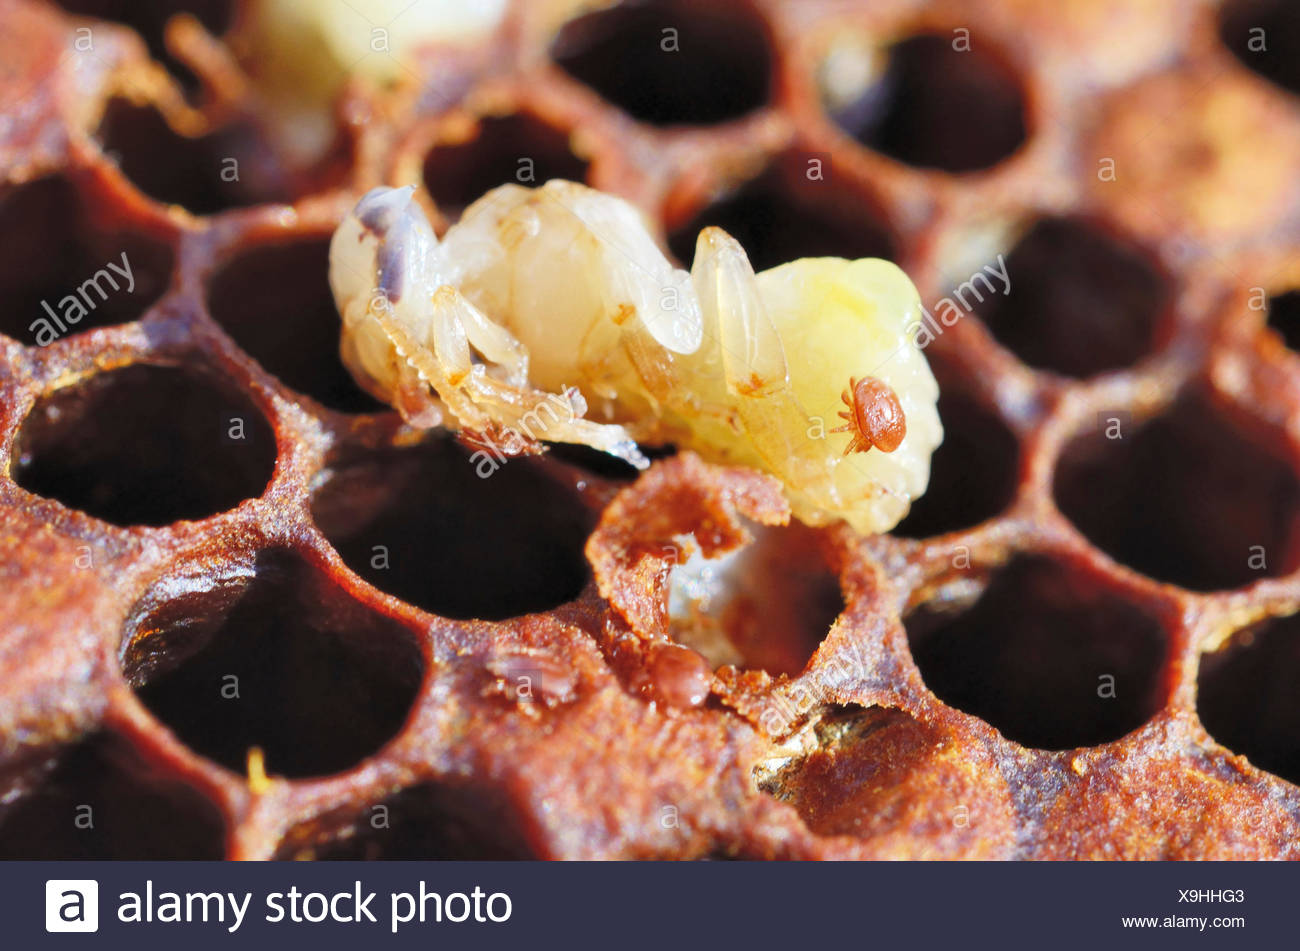 Bee colony infested with Varroa Honey Bee Mites (Varroa destructor, syn. Jacobsoni), mite on a Bee larva (Apis mellifera var - Stock Image